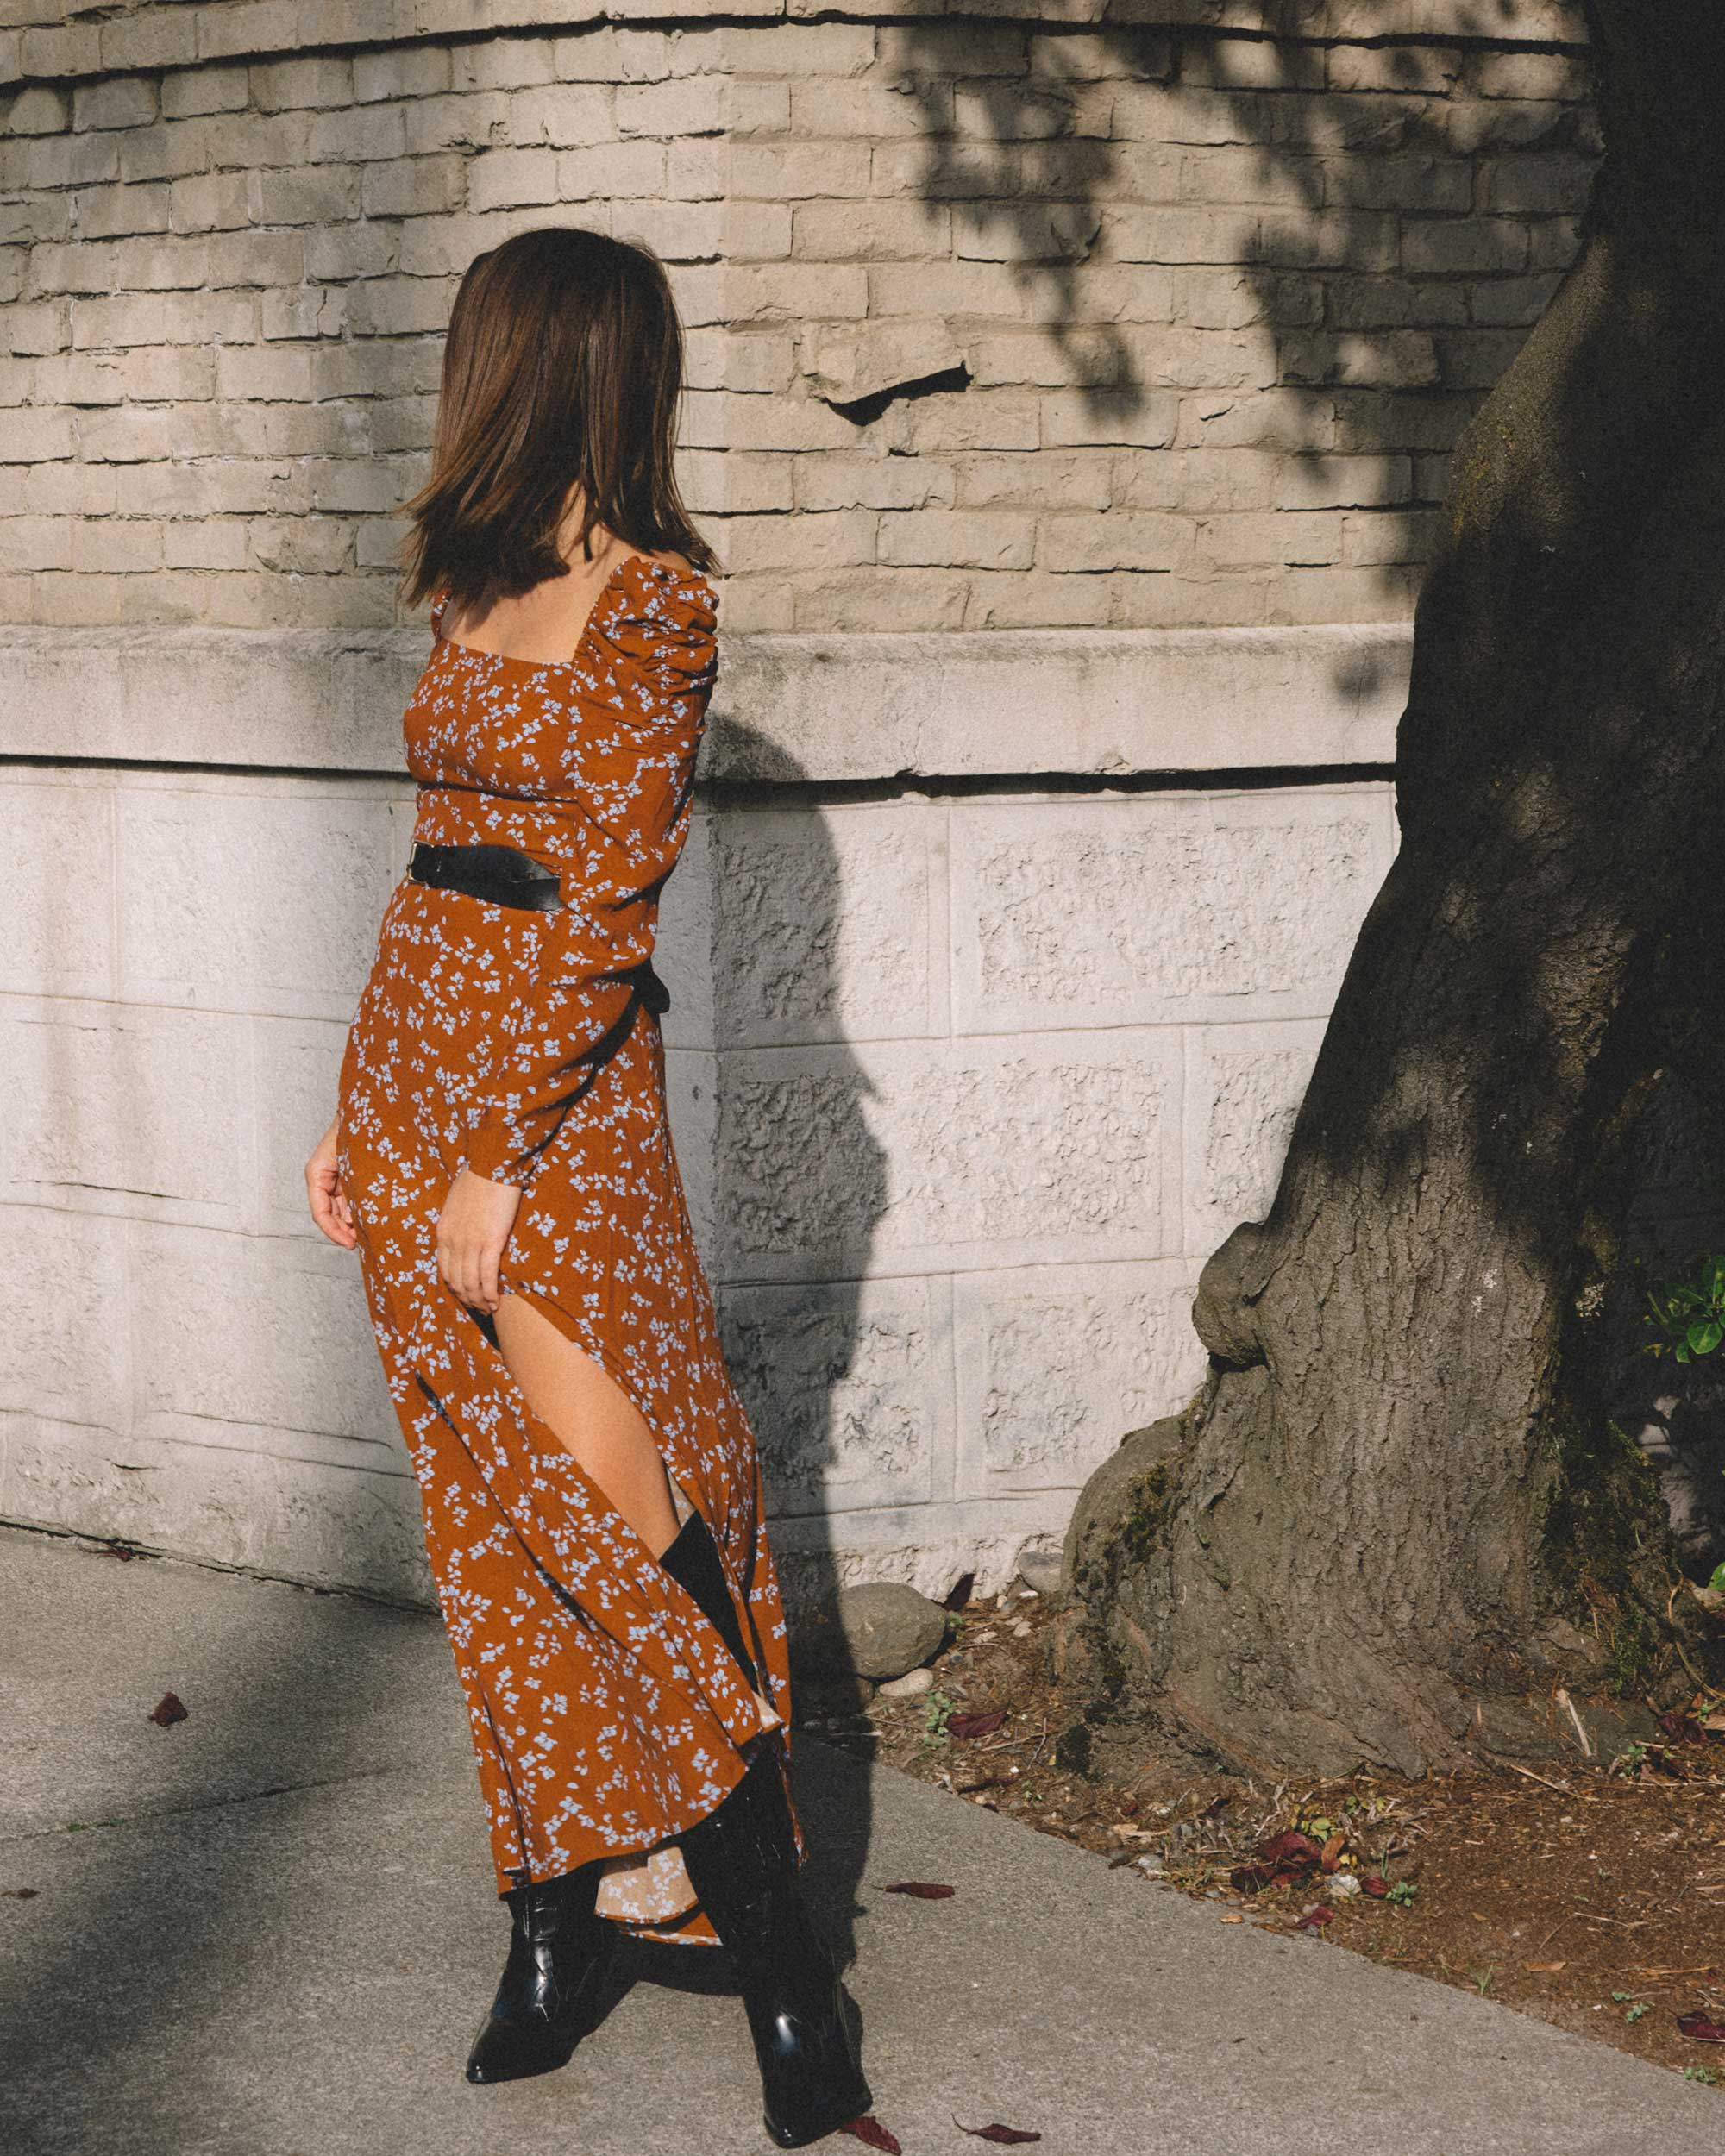 And Other Stories brown ruched floral maxi dress, Sigerson Morrison Karida Black Leather Knee High Boot, fall dress outfit2.jpg